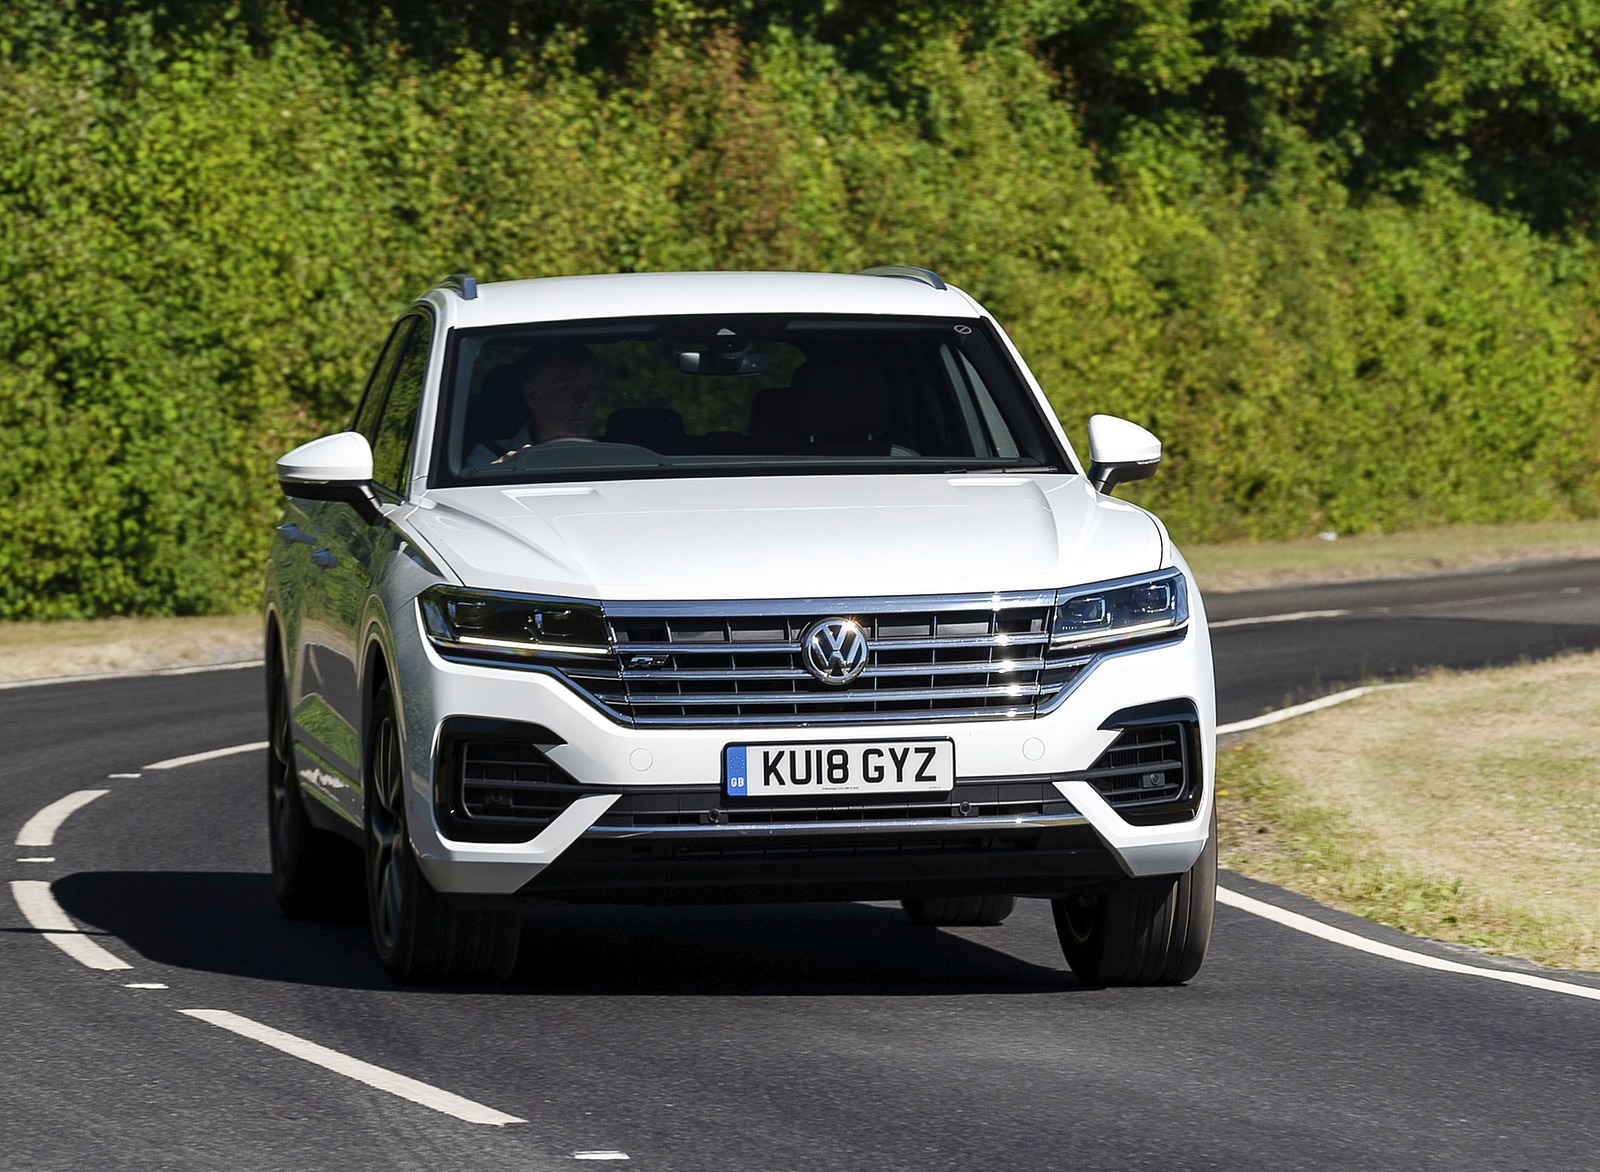 2019 Volkswagen Touareg V6 TDI R-Line (UK-Spec) Front Wallpapers (8)